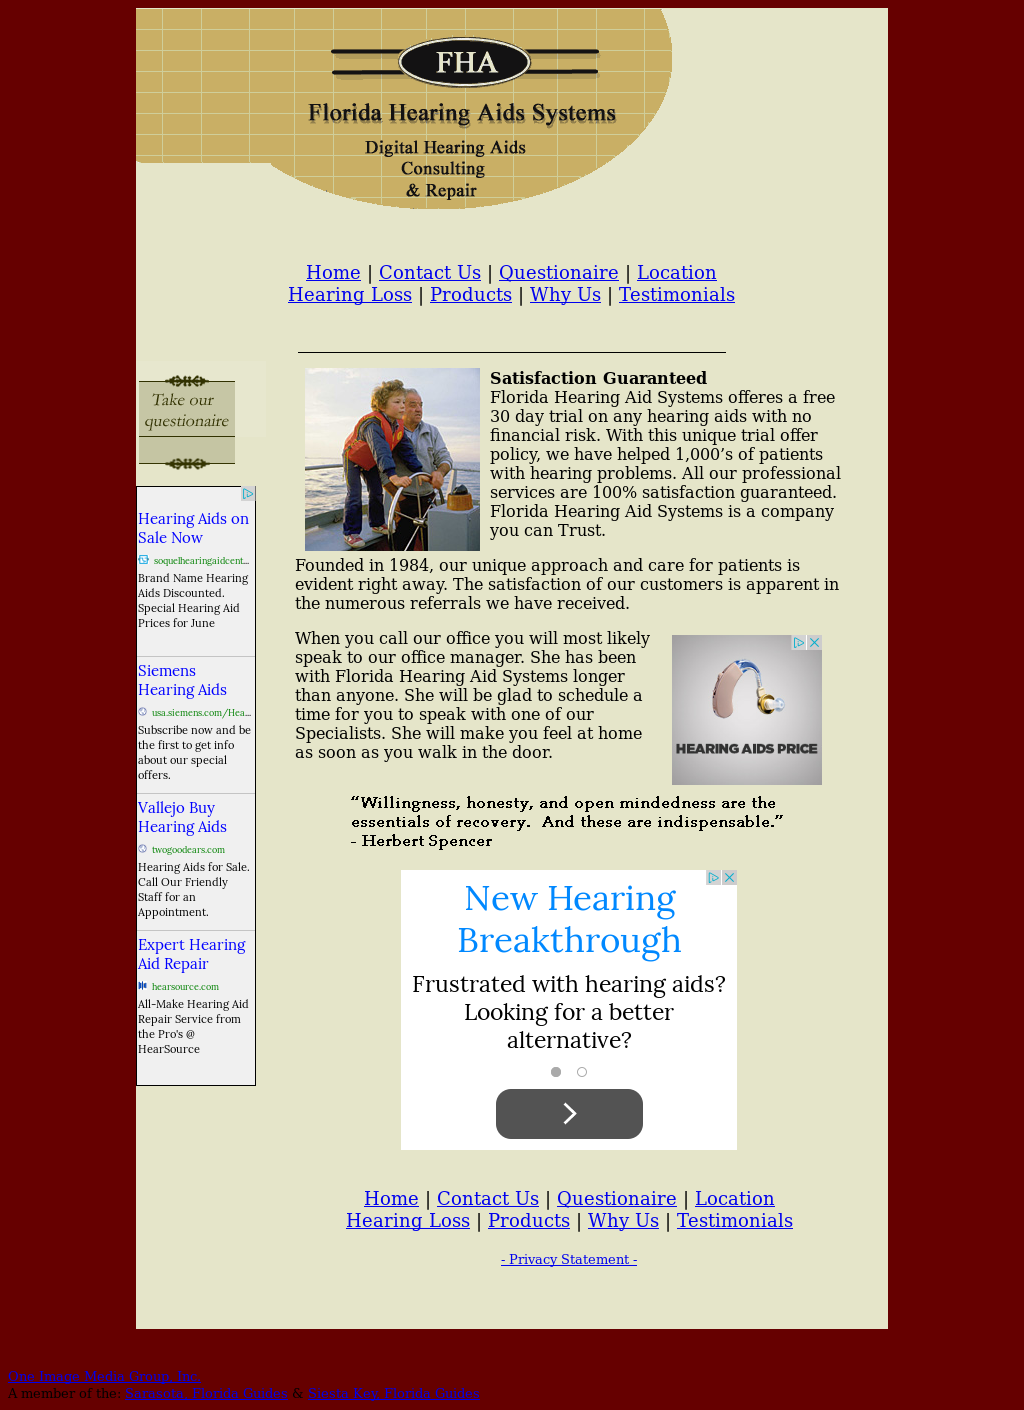 Florida Hearing Aid Systems Competitors, Revenue and